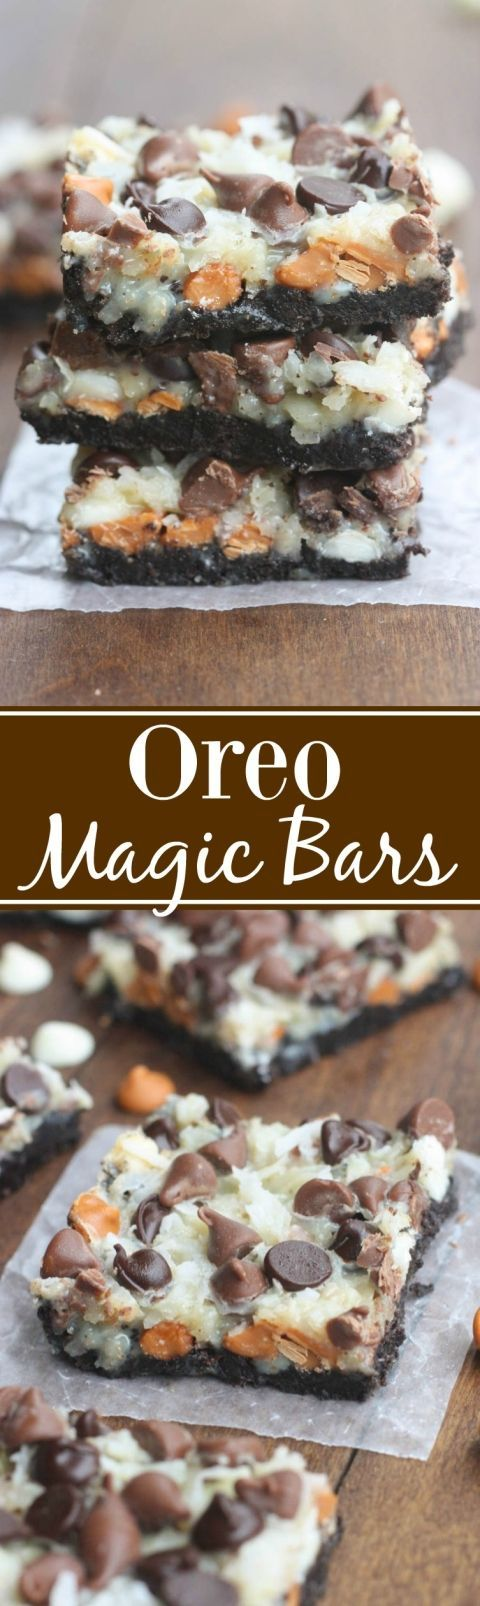 Oreo Magic Bars - Seven simple layers of Oreo chocolate bliss starting with an Oreo crust three different types of chocolate chips coconut and nuts. This is the EASIEST dessert and always a party favorite.